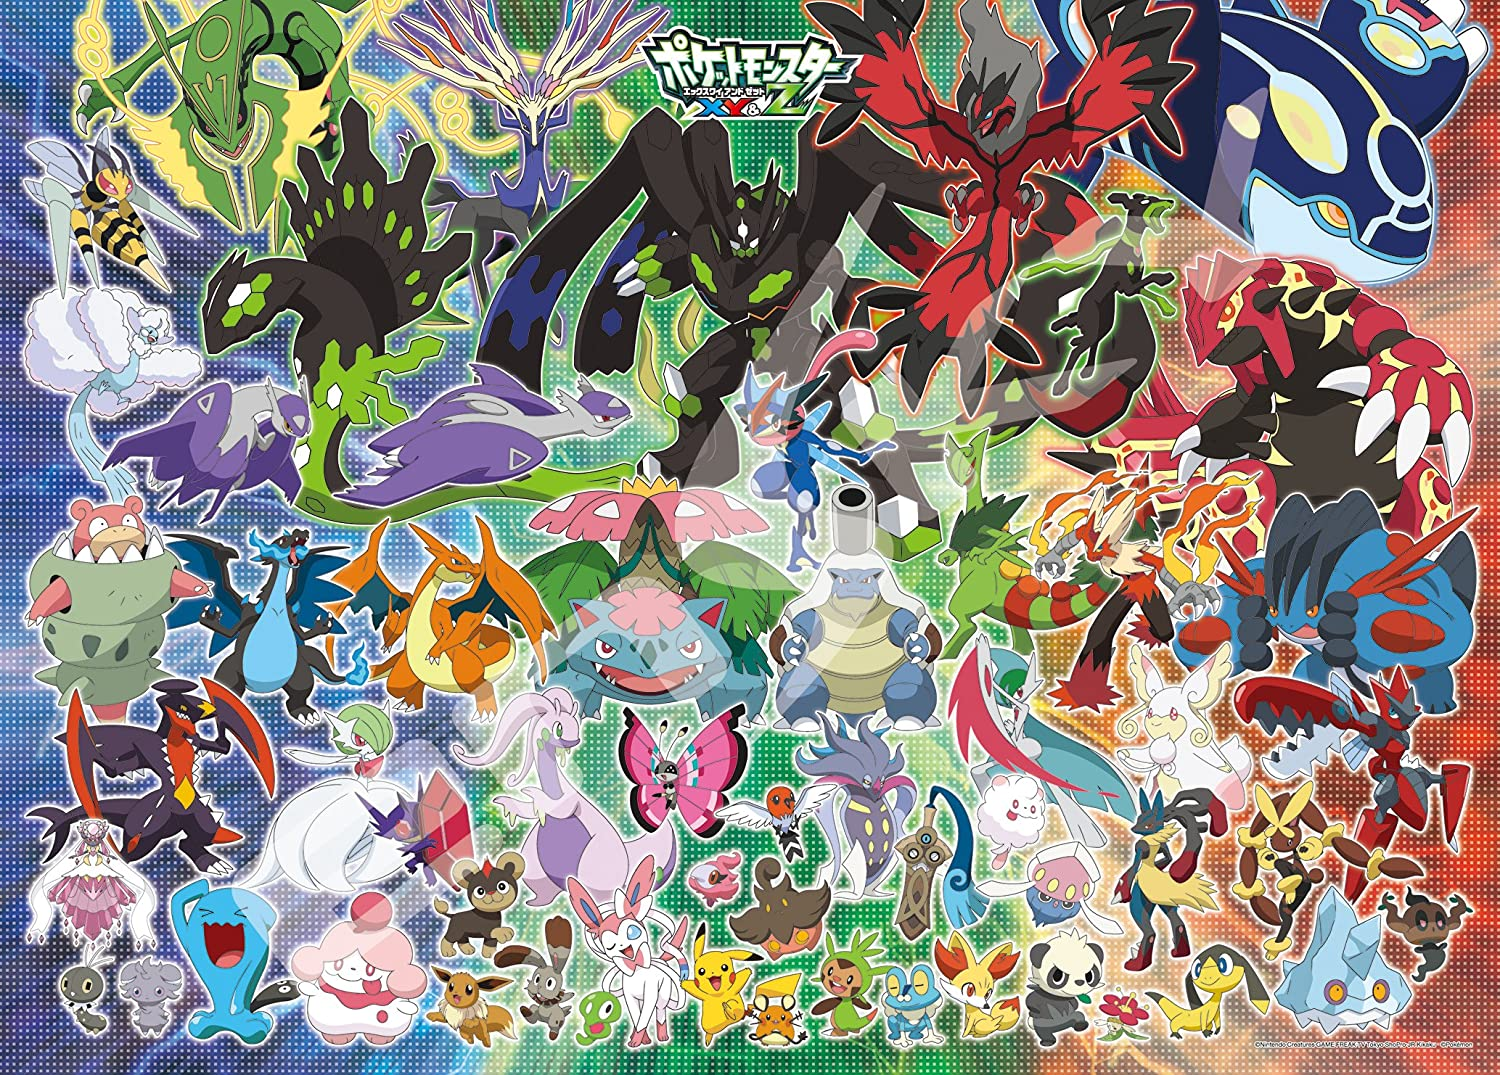 300-piece jigsaw puzzle Pokemon XY & Z A New Pokemon Battle of dawn large piece (38x53cm)